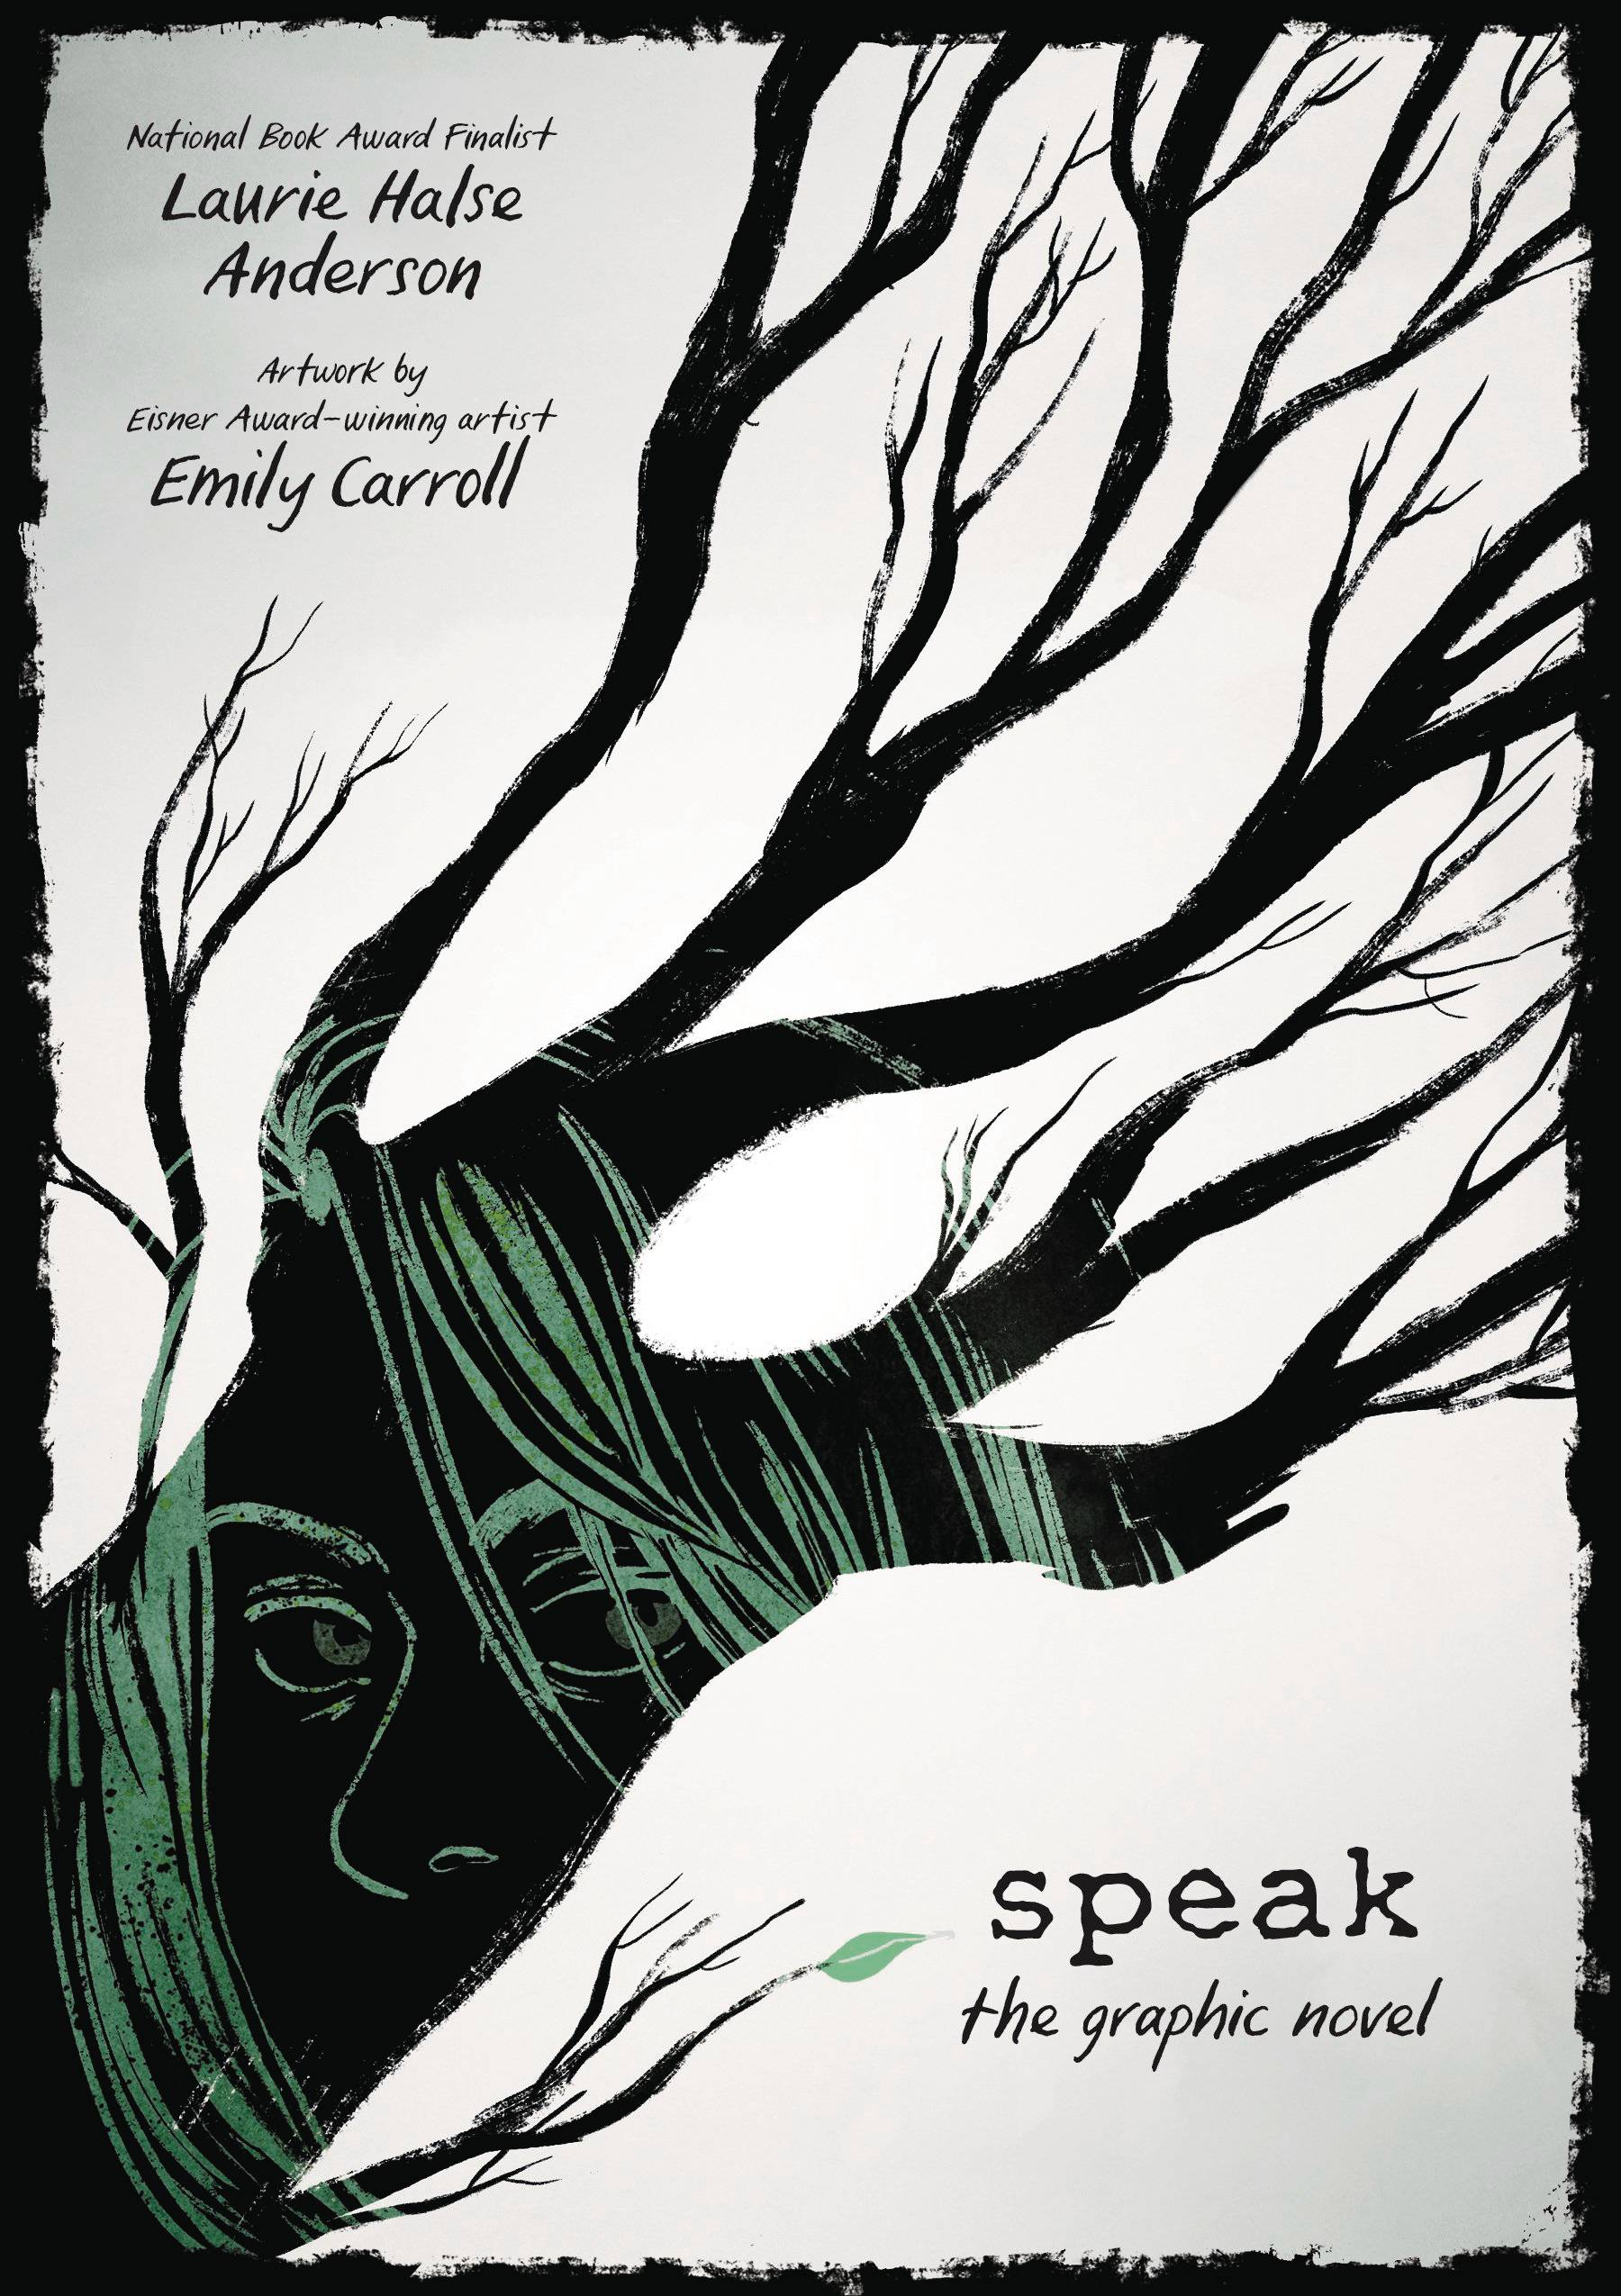 Speak: The Graphic Novel , by Laurie Halse Anderson and Emily Carroll